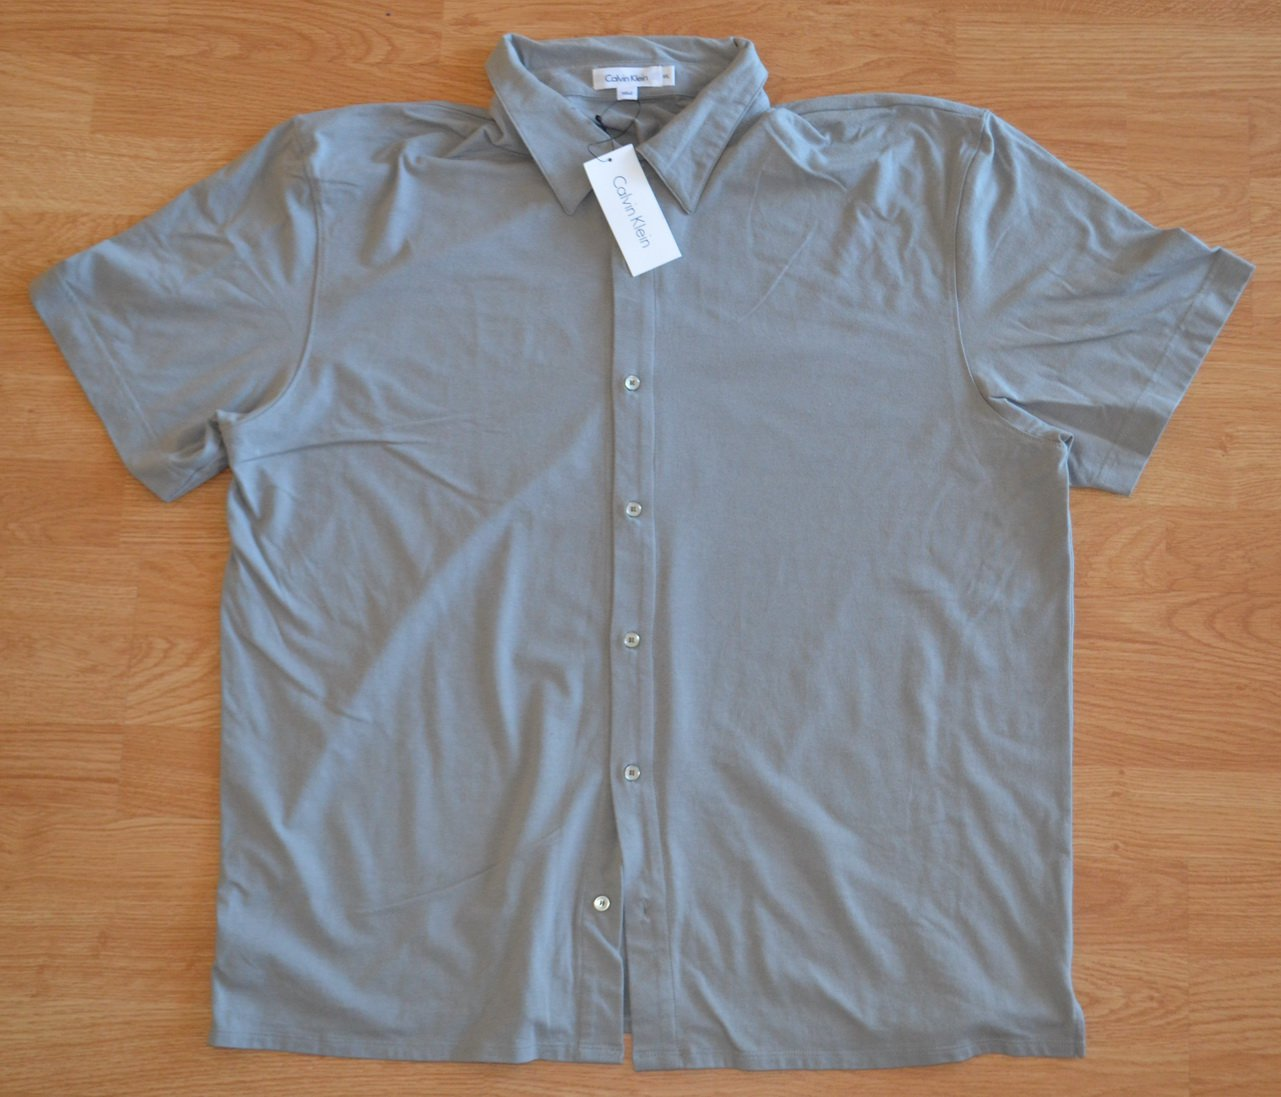 N956 New Men's shirt CALVIN KLEIN Size XXL MSRP $56.00